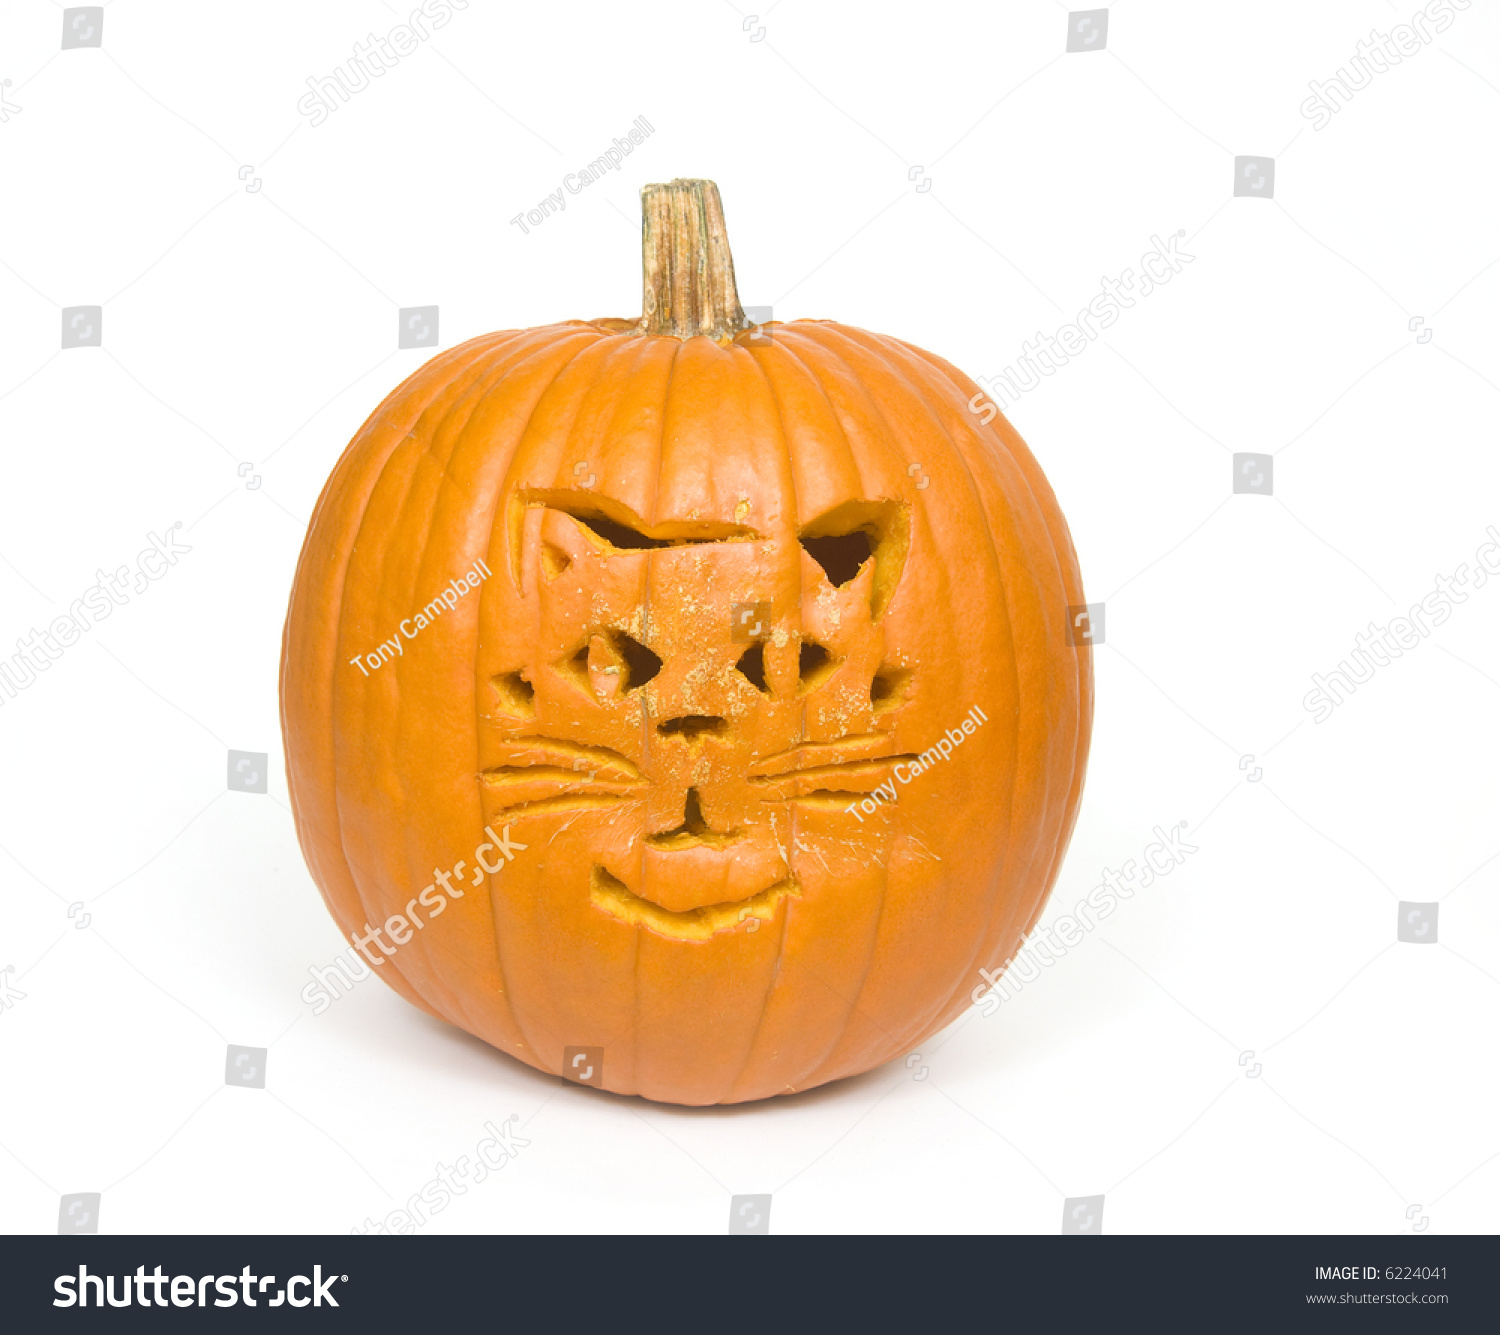 A cat face carved into a pumpkin for halloween stock photo for Cat carved into pumpkin